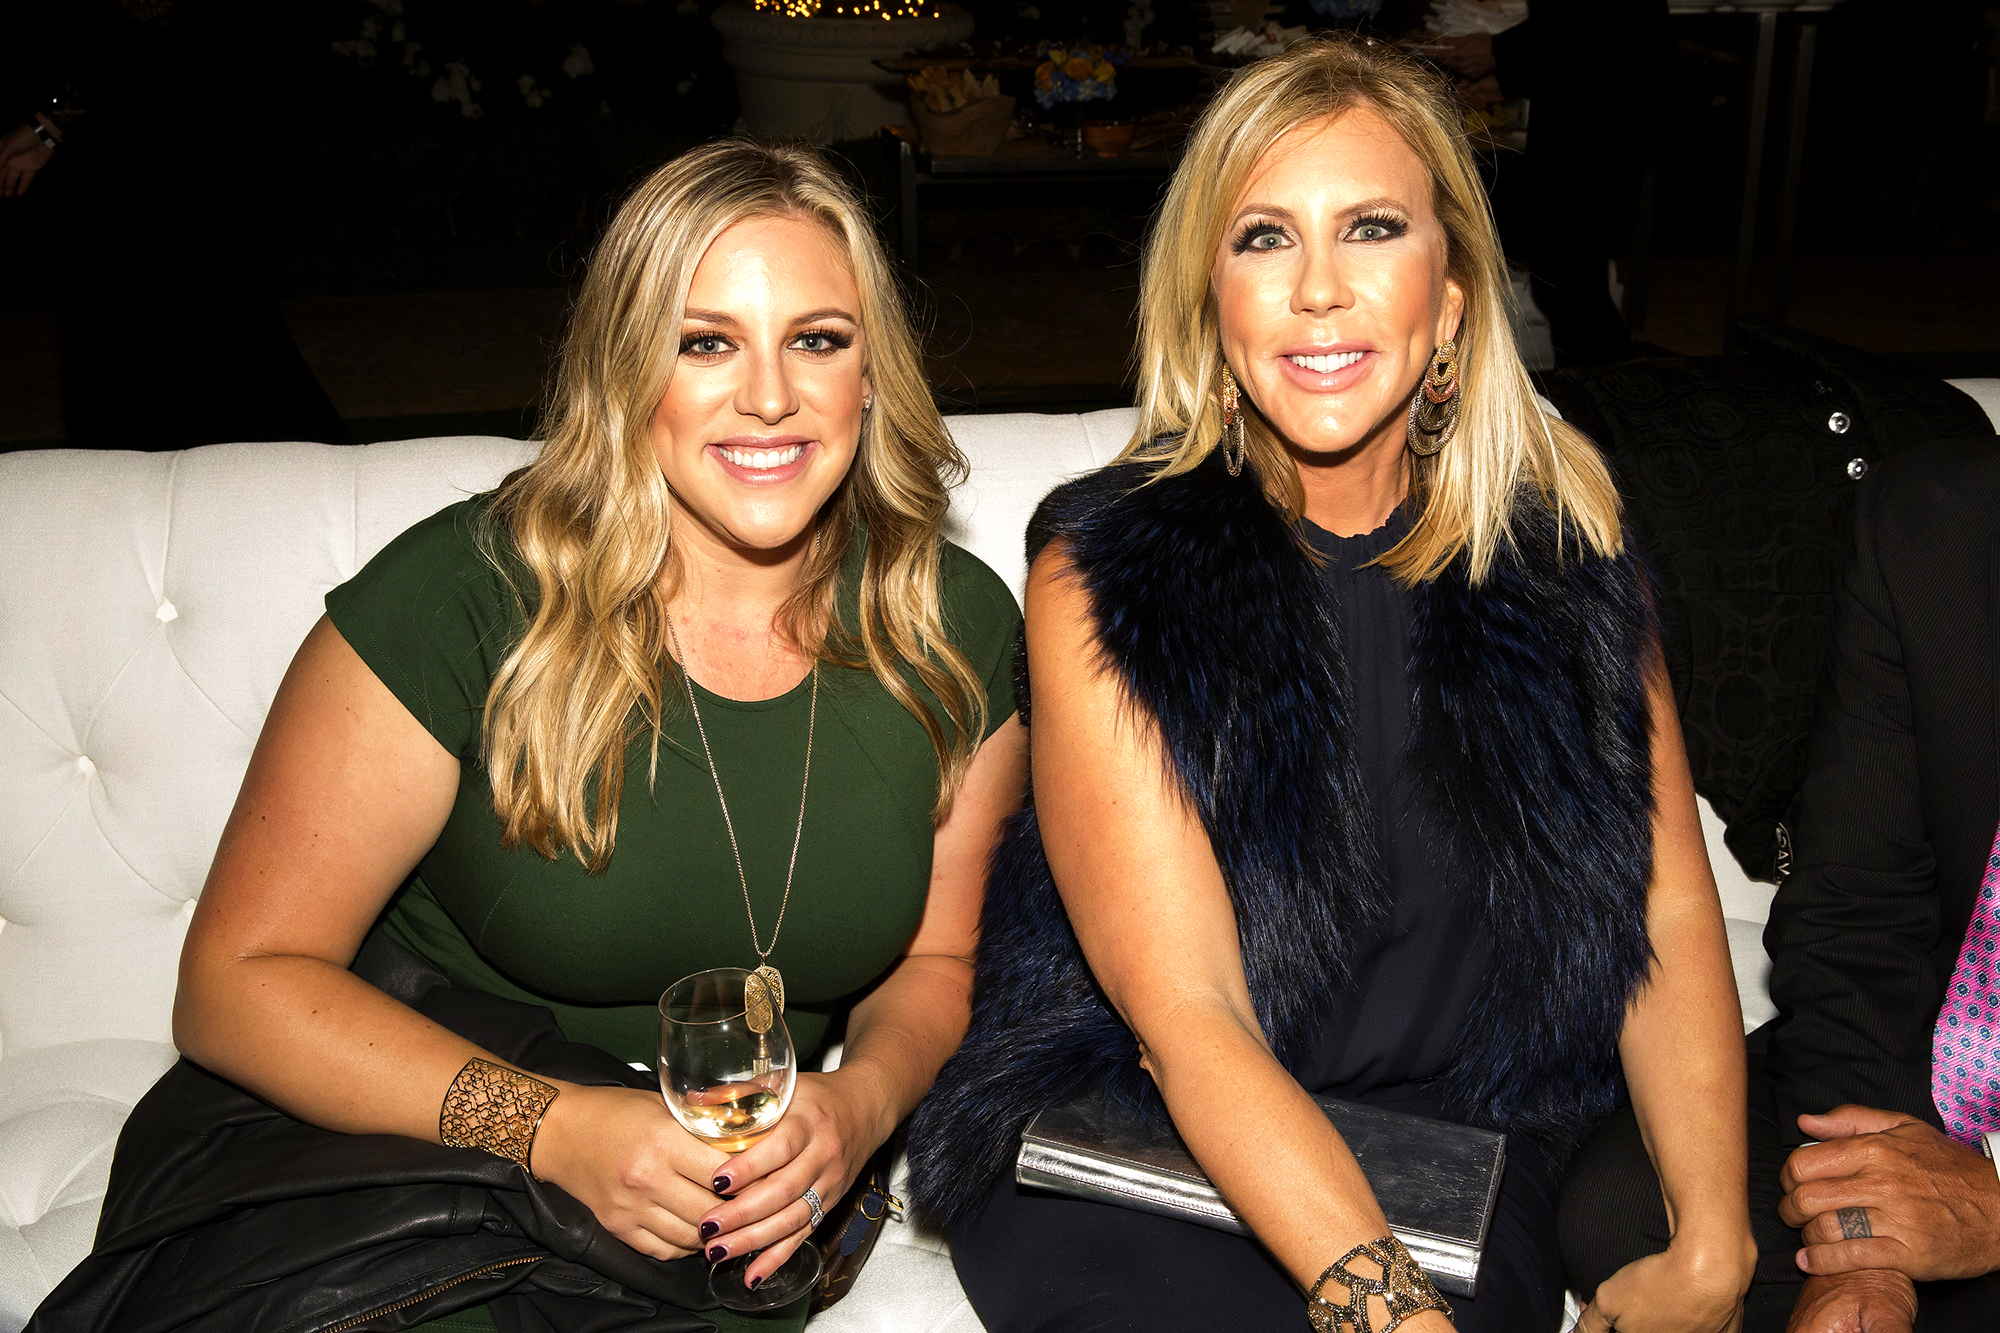 Vicki Gunvalson's Daughter, Briana Culberson, Shares Before and After Keto Photos: 'I've Lost 45 Lbs' - Briana Culberson, and Vicki Gunvlson